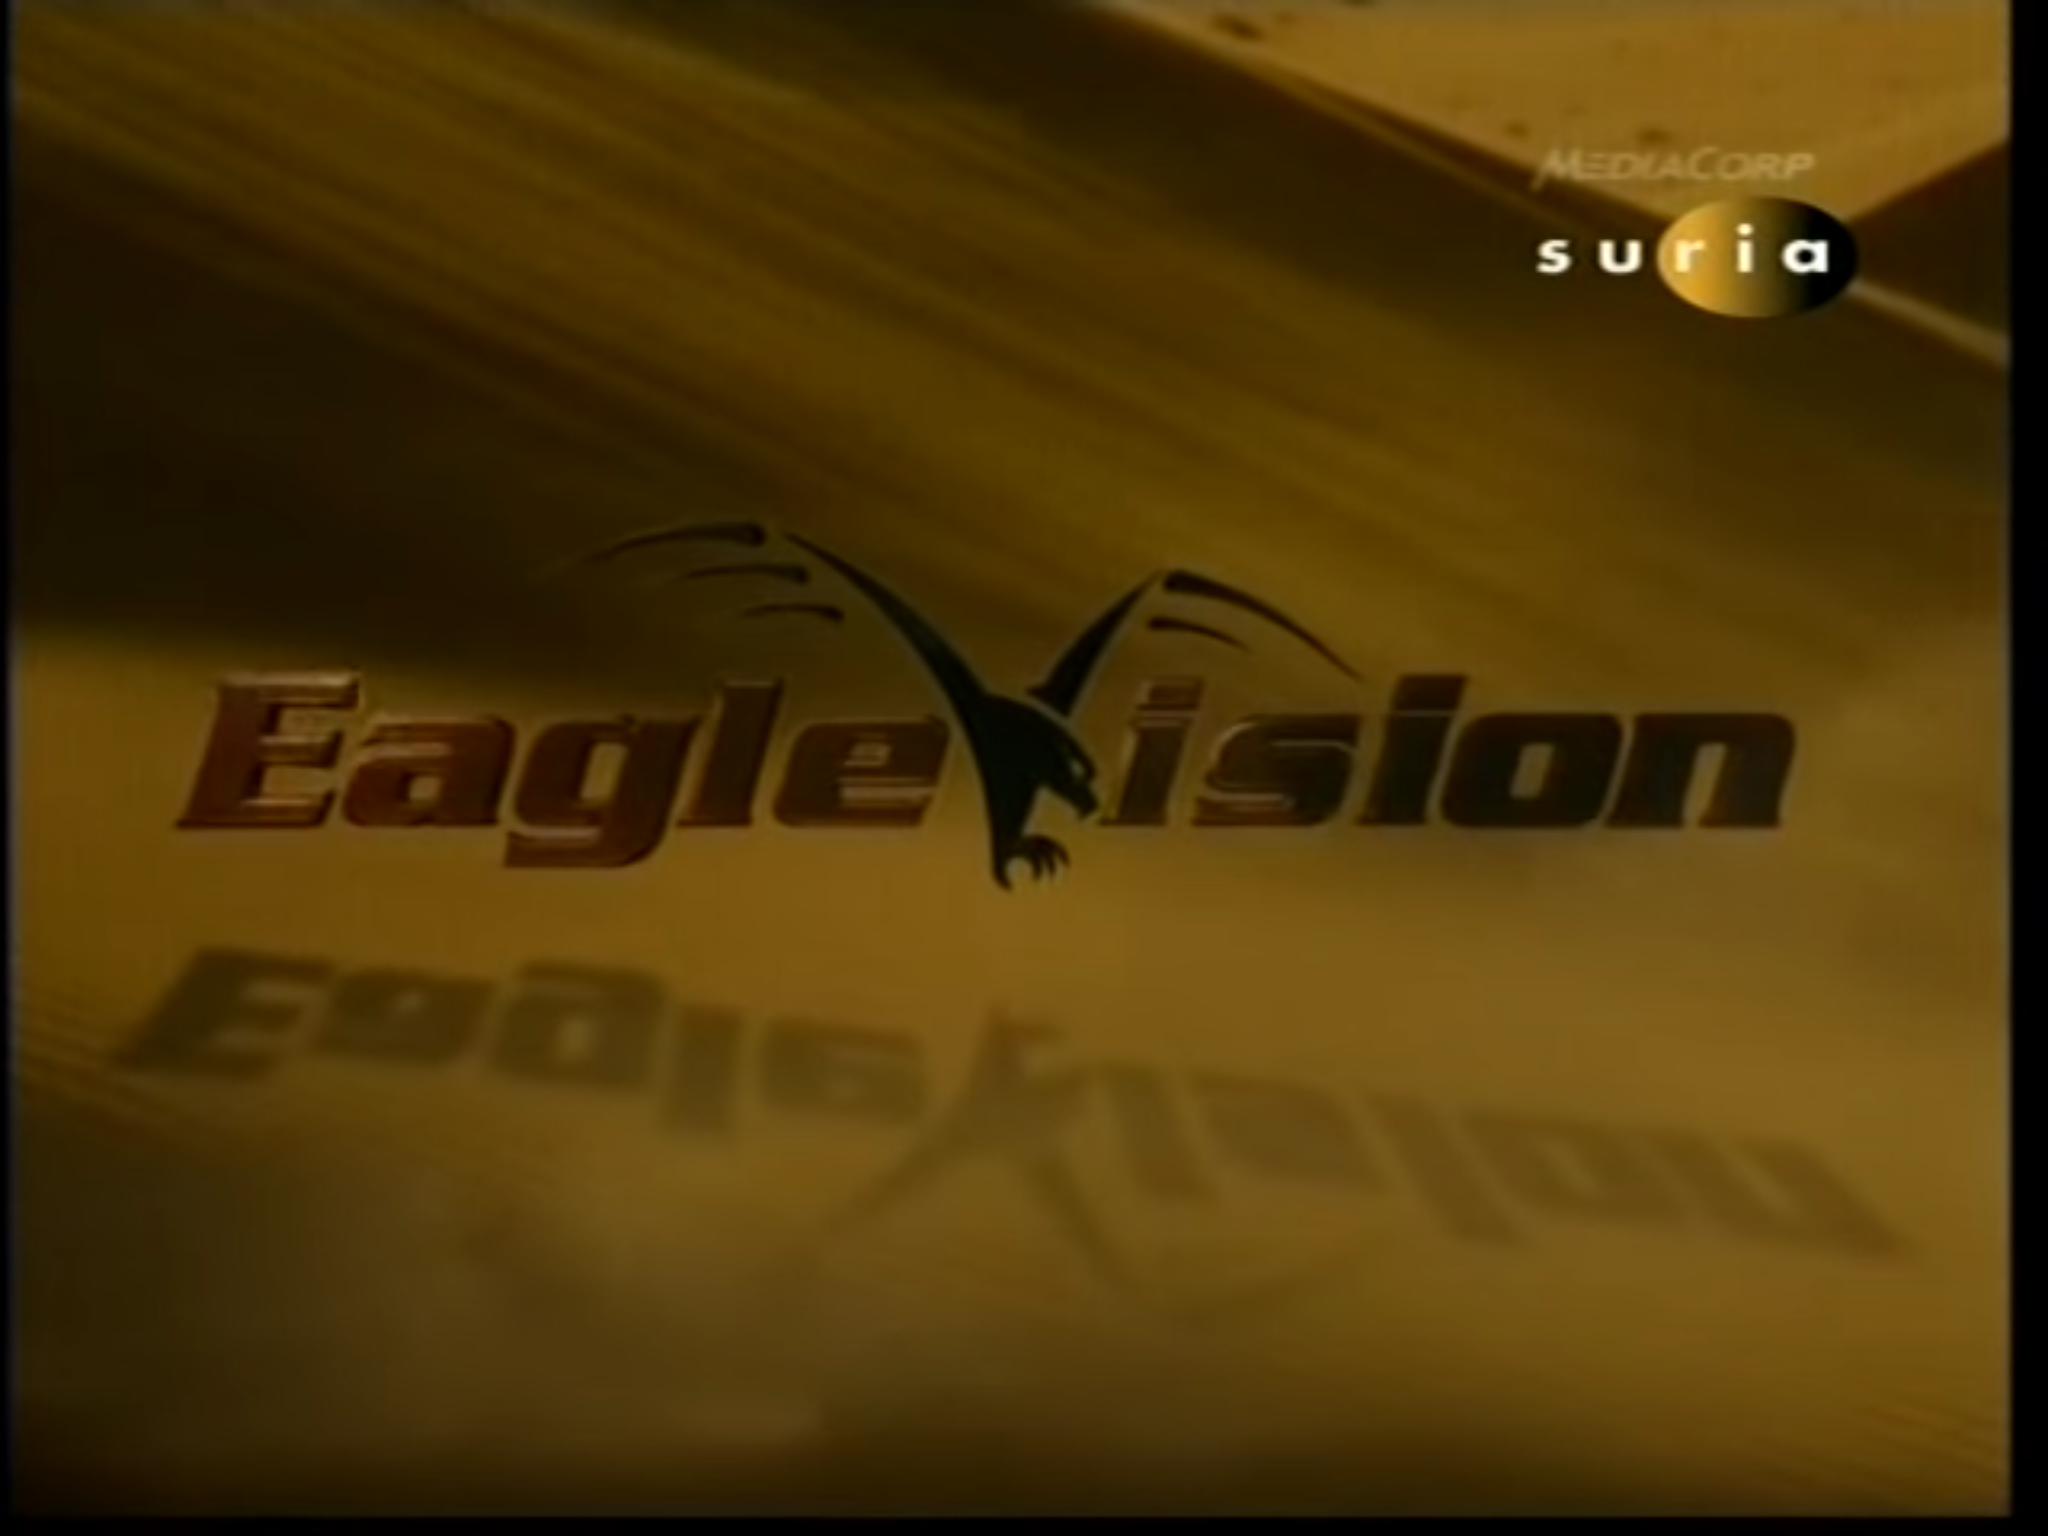 Mediacorp Eaglevision